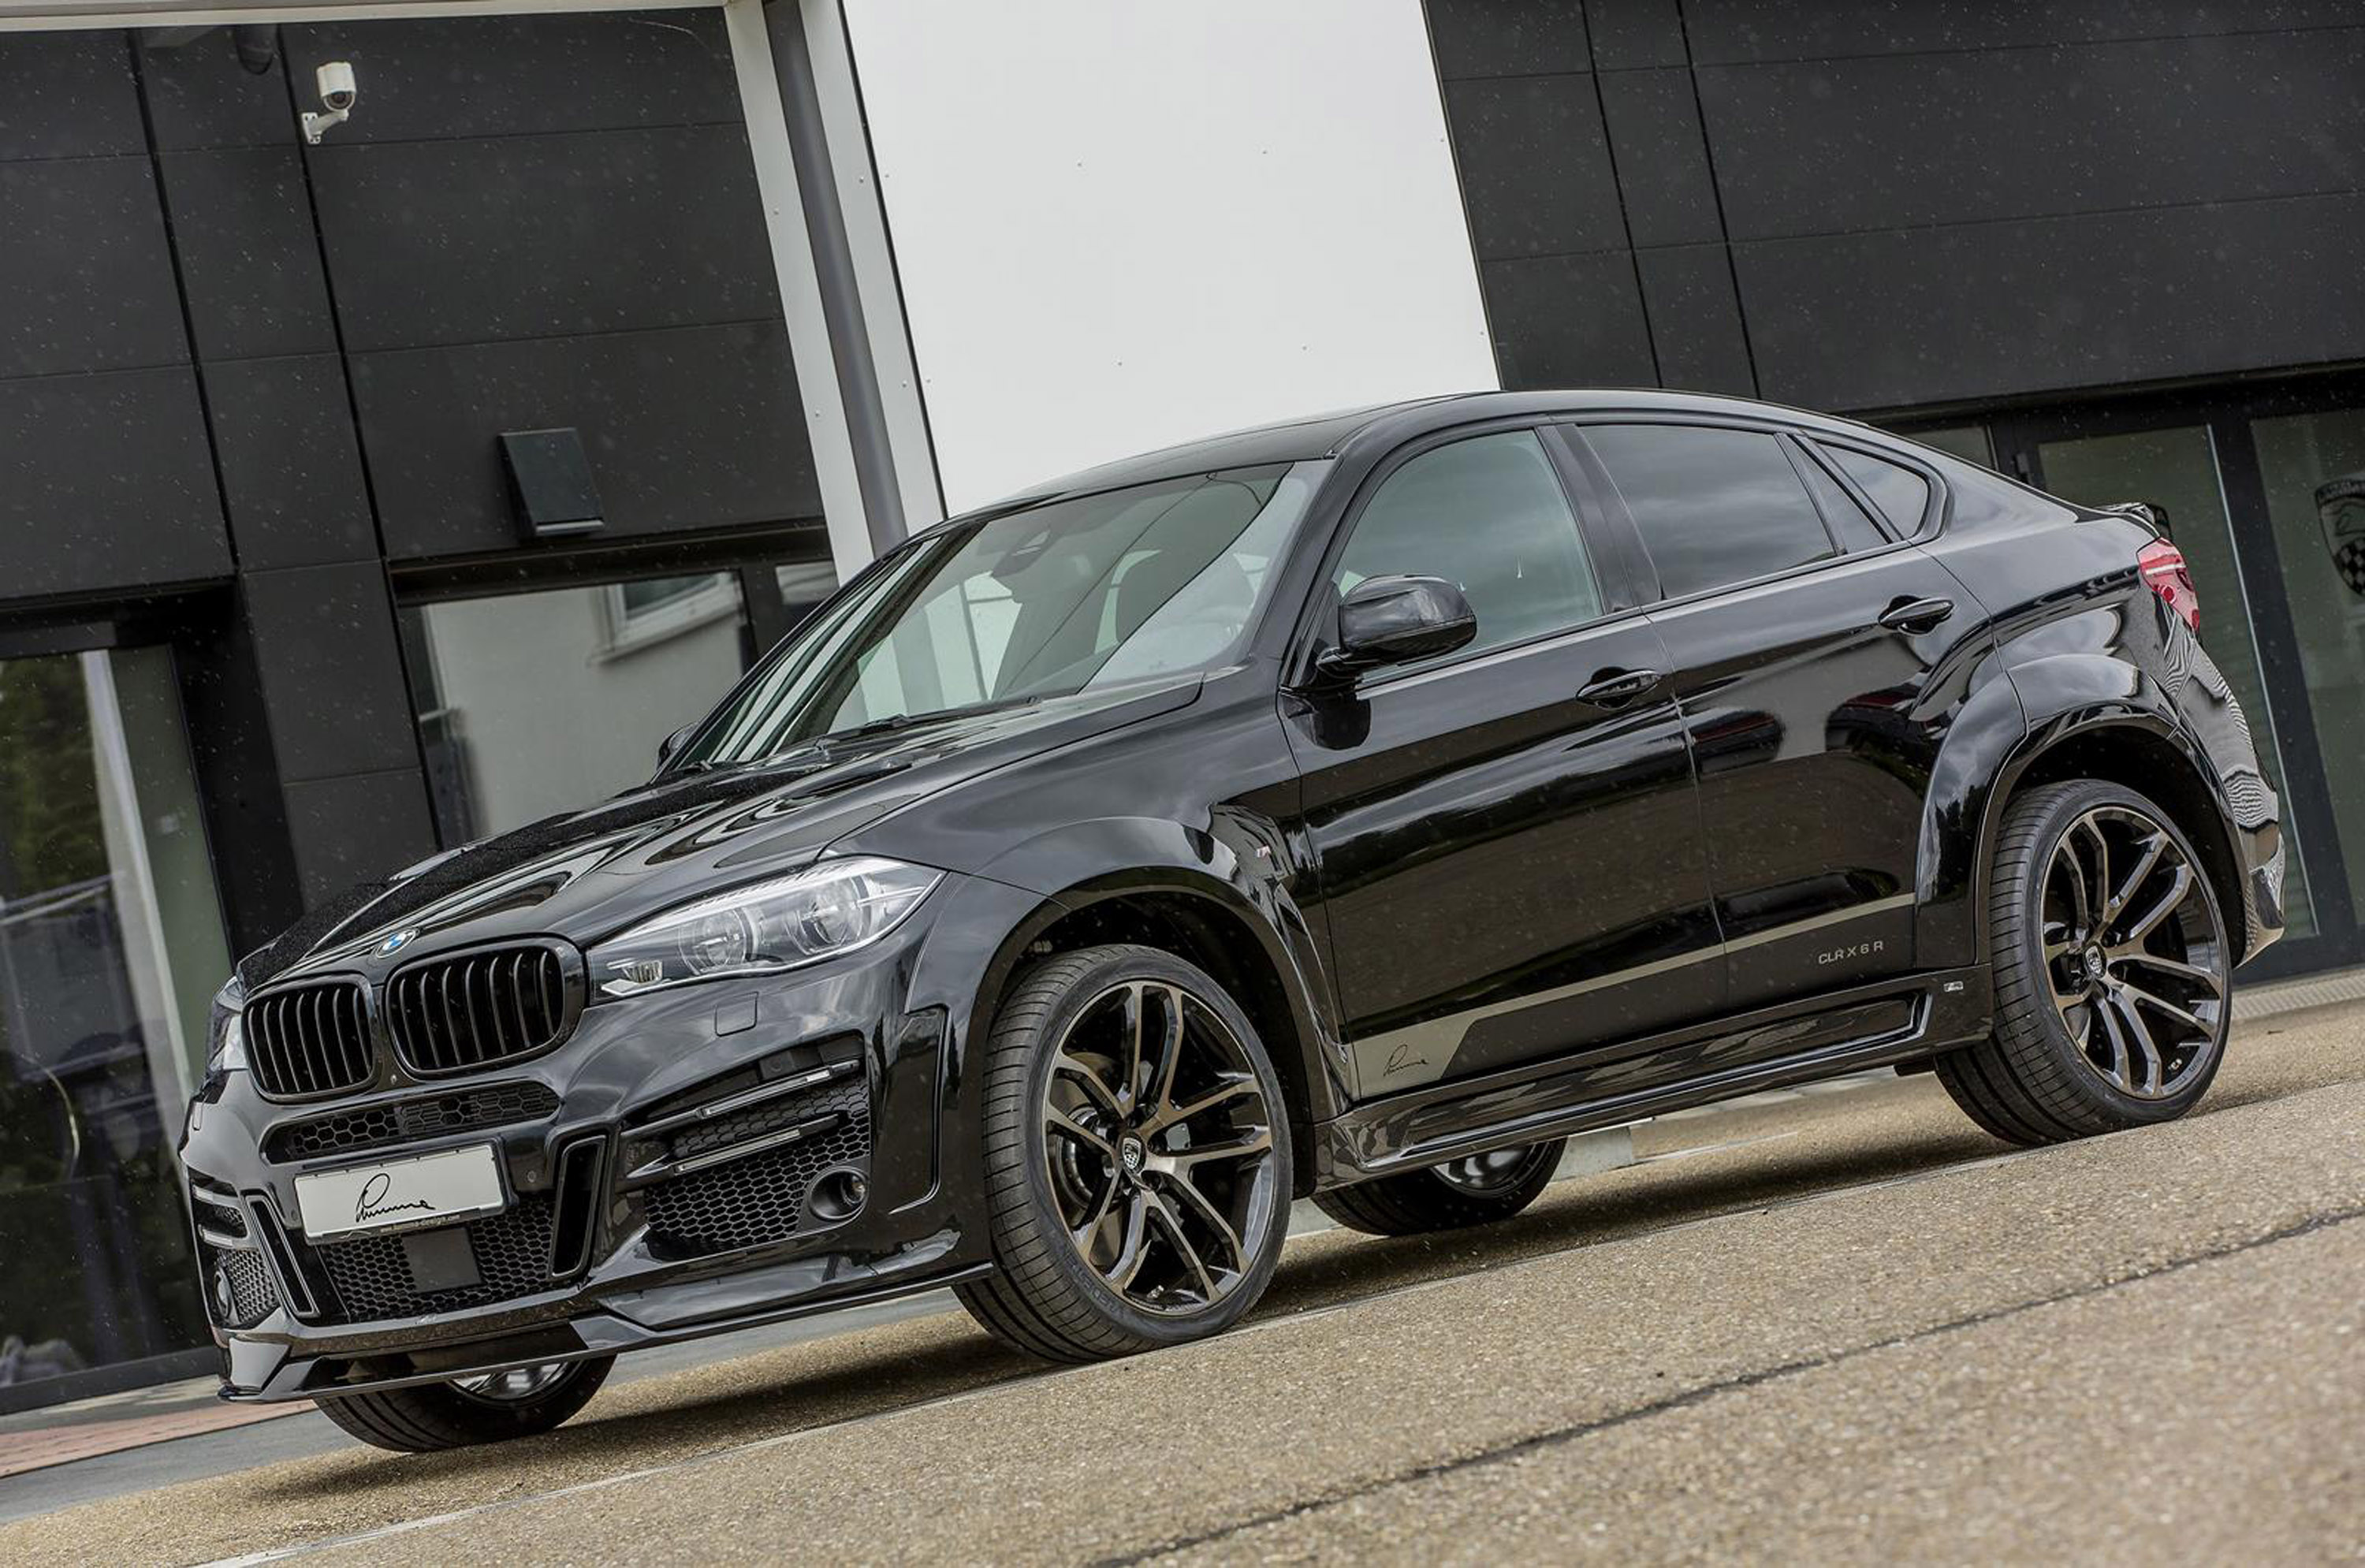 Badass Car Wallpapers Bmw X6 Clr X6r Is Here To Demonstrate Some Massiveness And